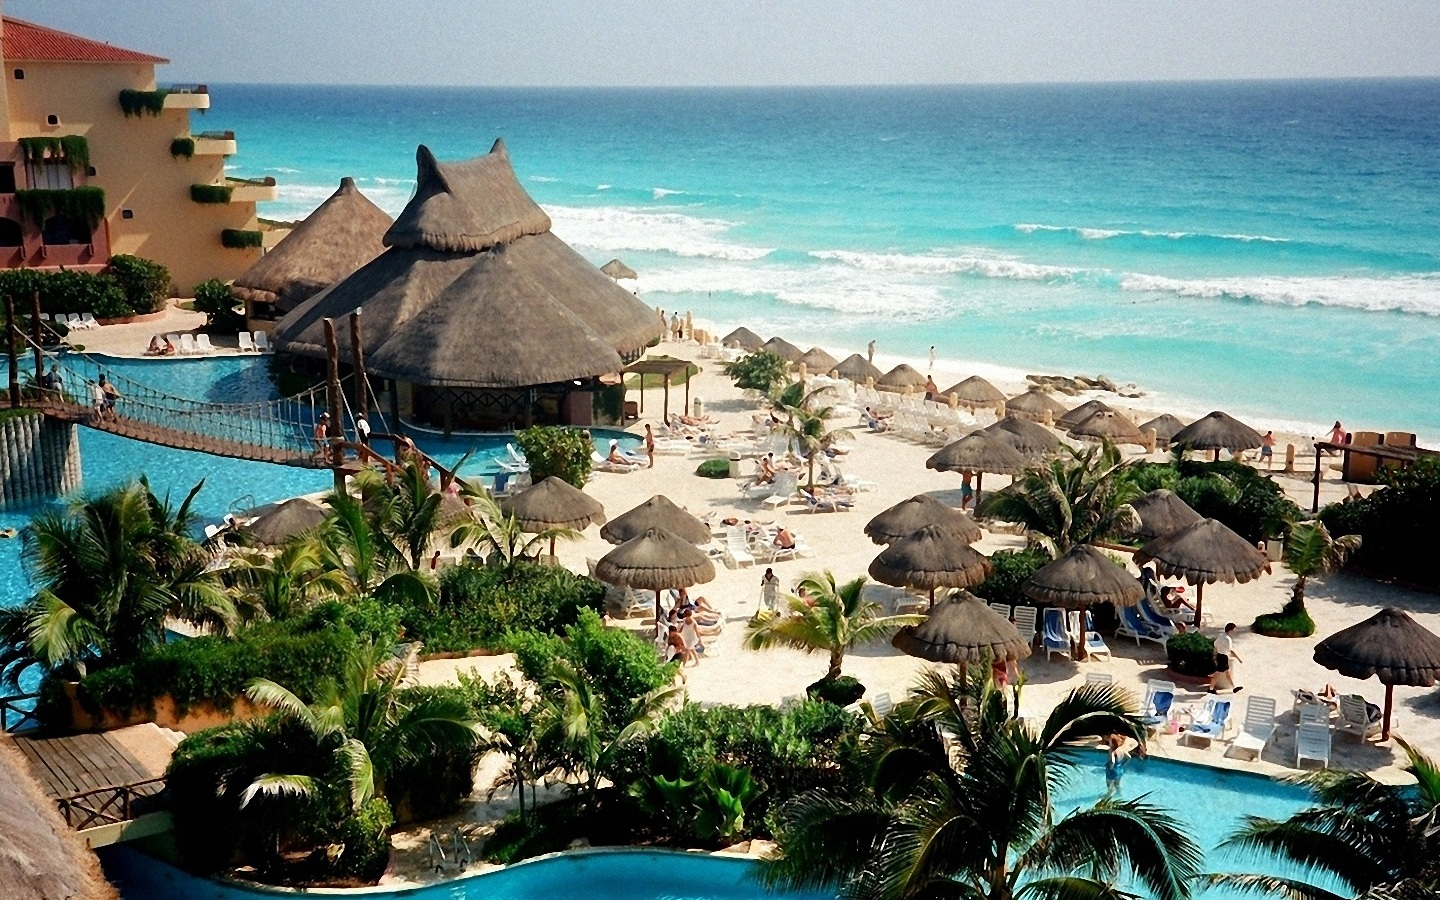 Cancun Wallpaper; Cancun Wallpaper; Cancun Wallpaper ...